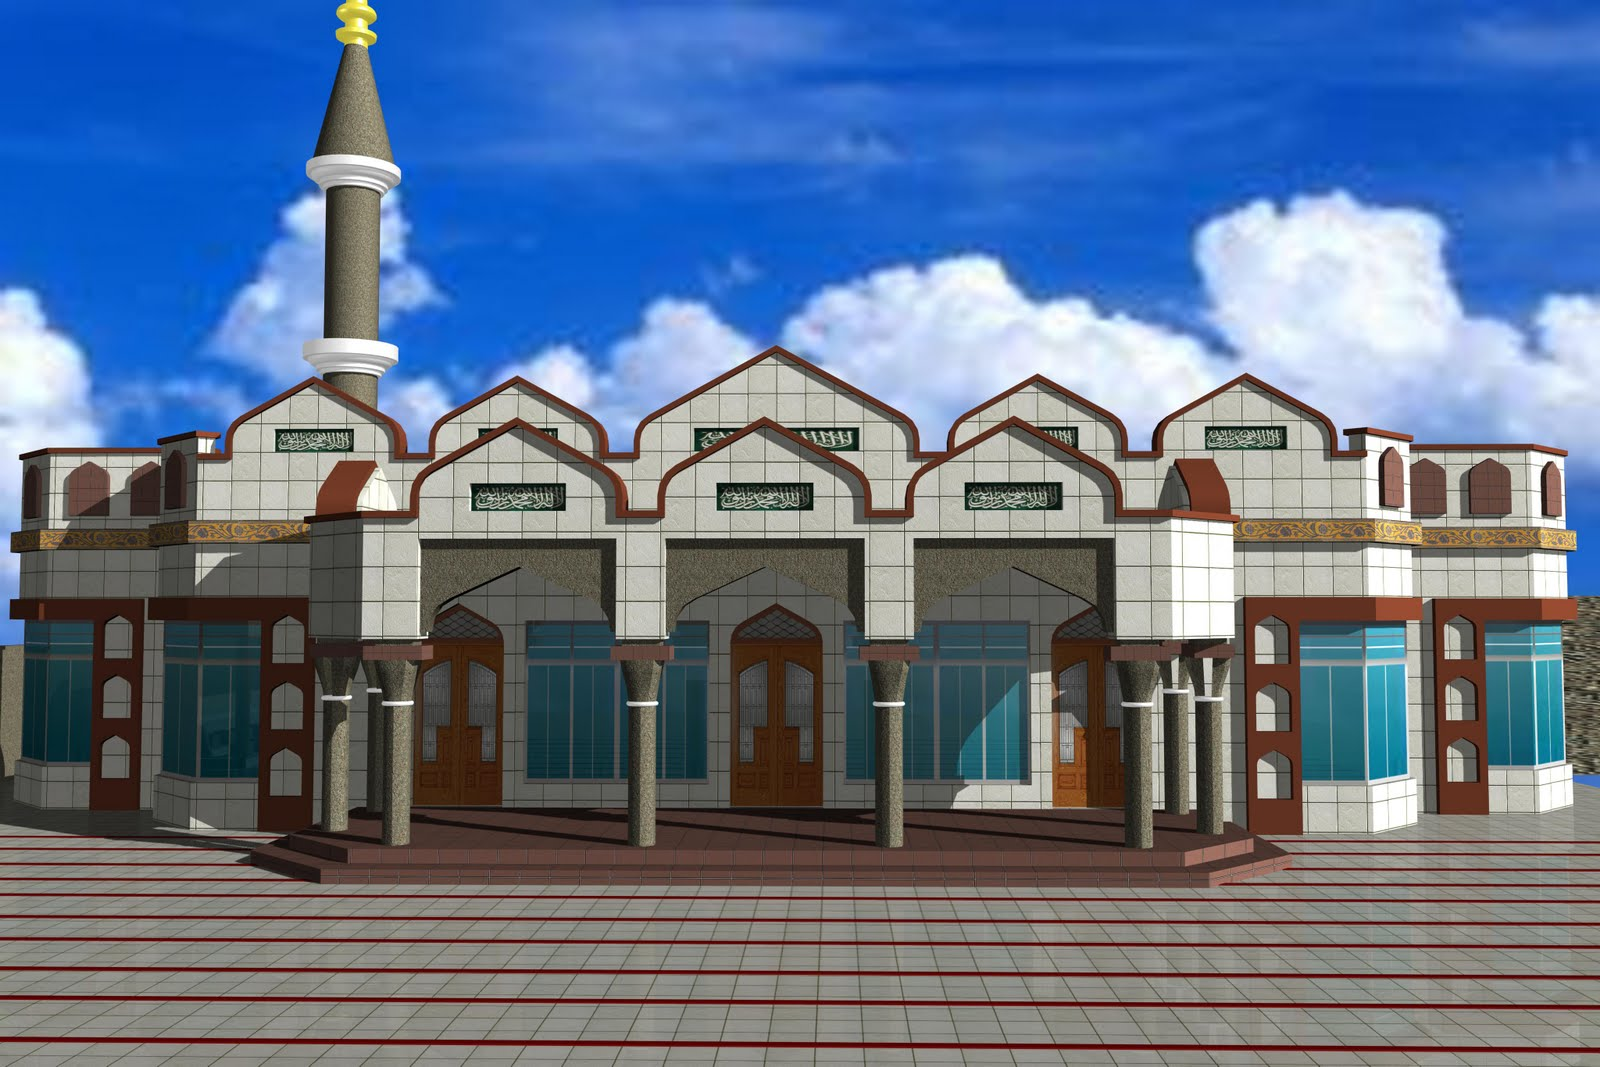 King2011 design for ceiling -  King2011 Mosque And School Design 3d Ceiling